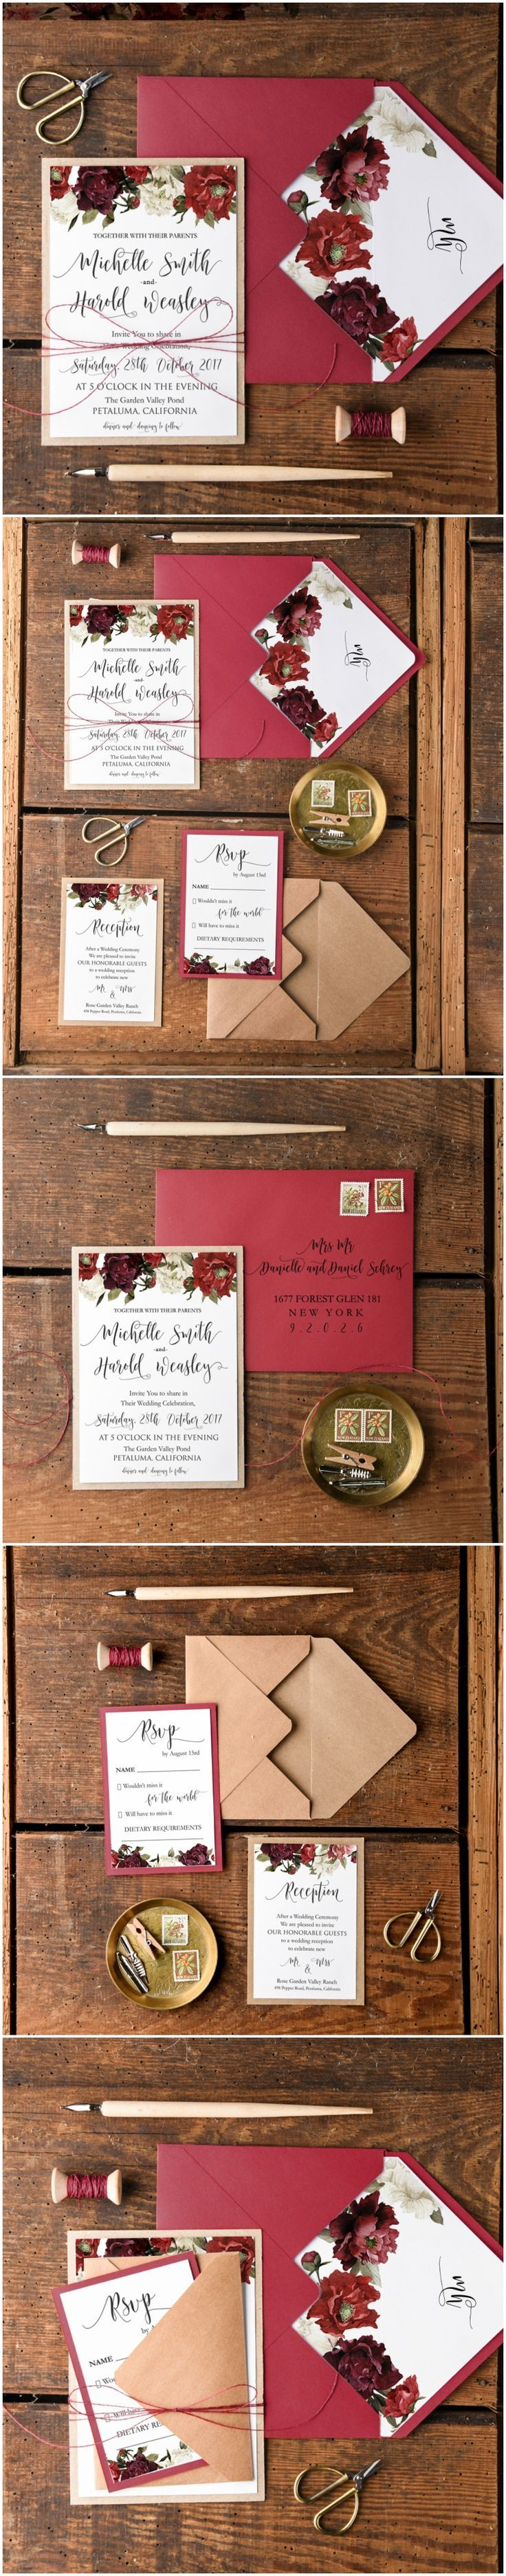 36 best wedding invitations images by Stef Fon on Pinterest ...